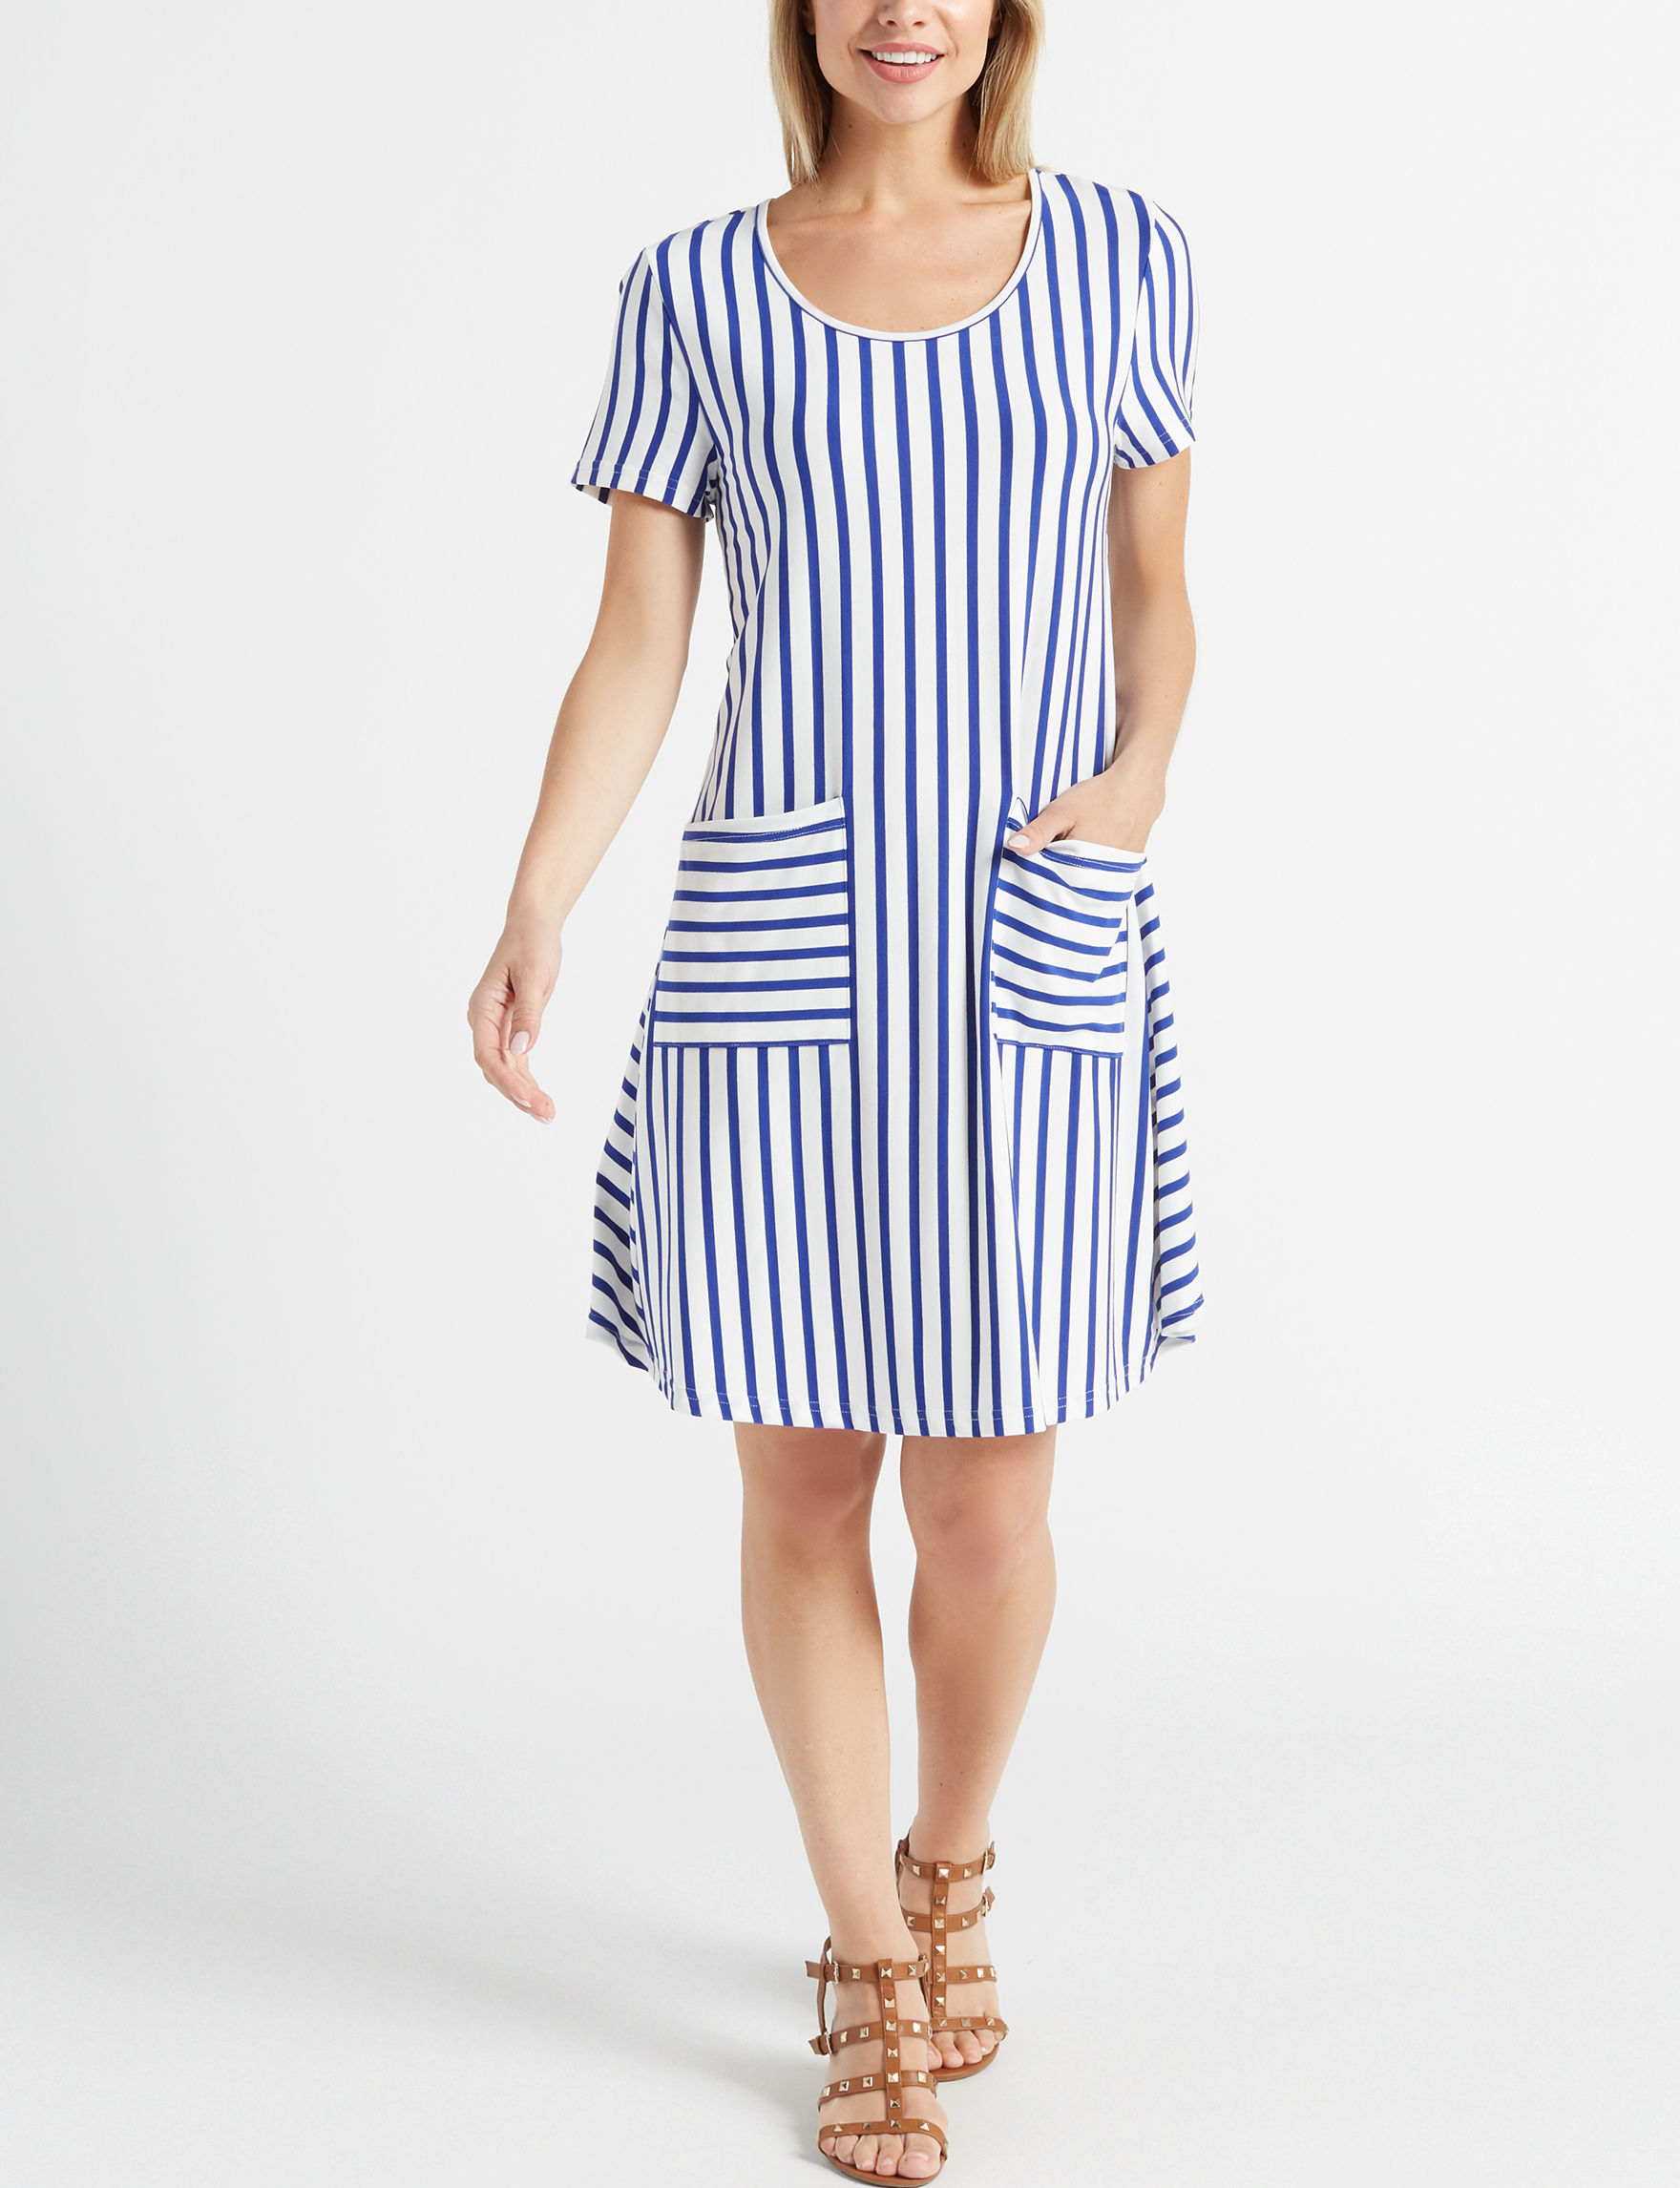 Nina Leonard White Stripe Everyday & Casual Shift Dresses